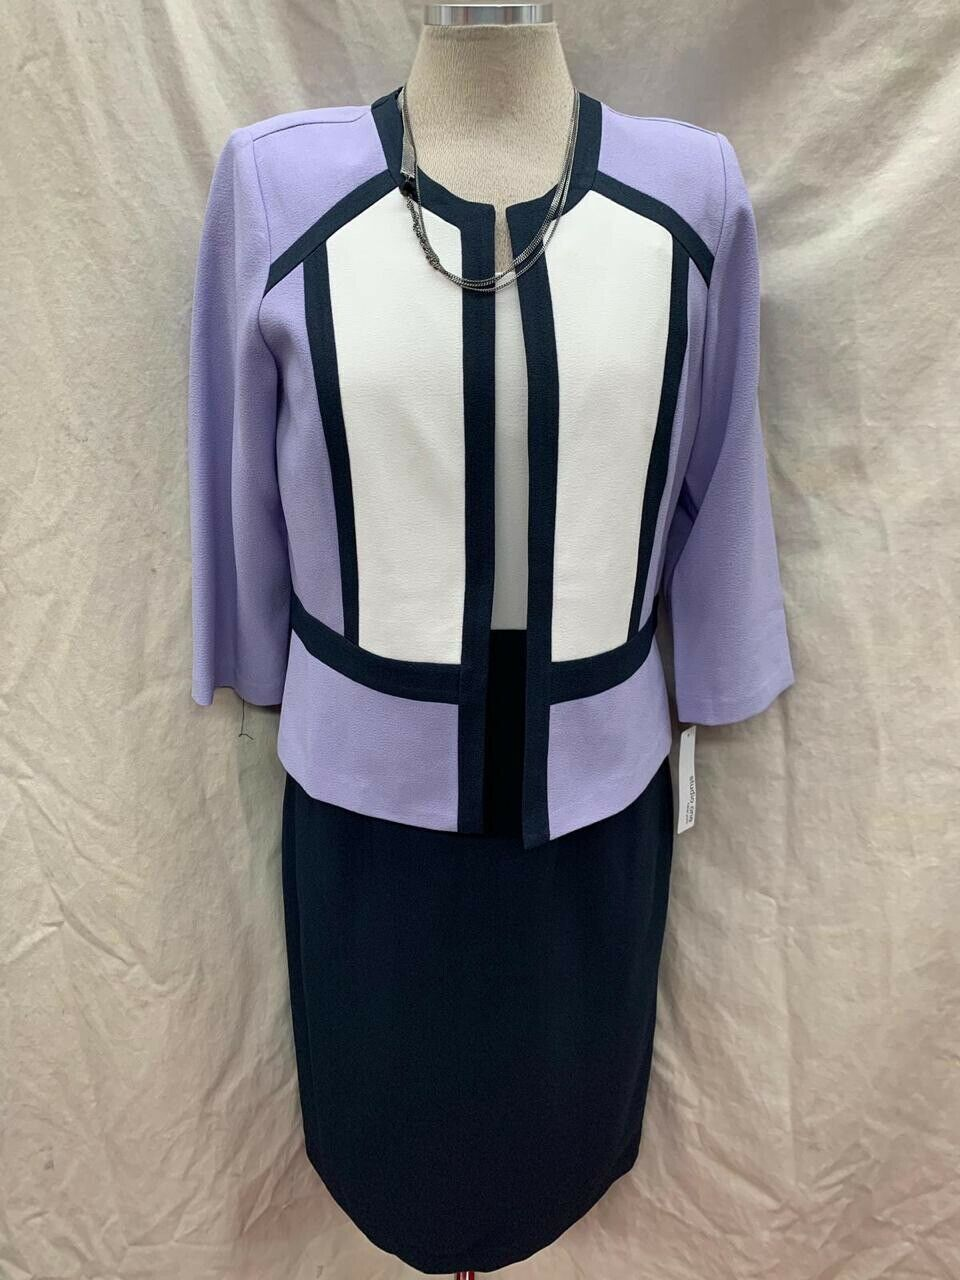 SANDRA DARREN DRESS SUIT NEW WITH TAG. SIZE 14 DRESS LENGTH 39  RETAIL 129